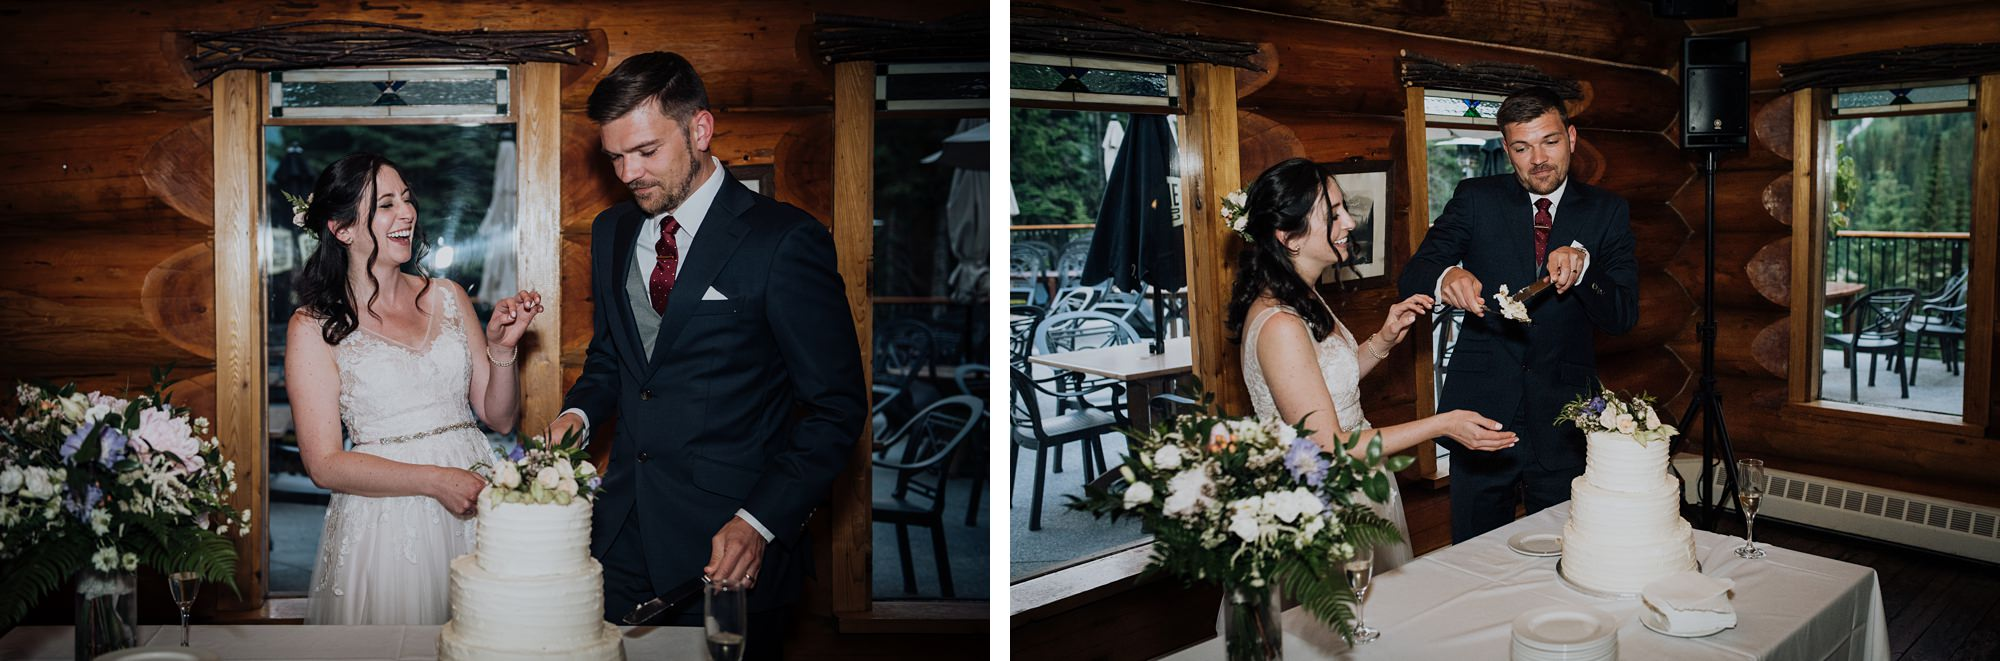 Bride and groom cut their wedding cake in log cabin at classic and modern mountain wedding at island lake lodge wedding